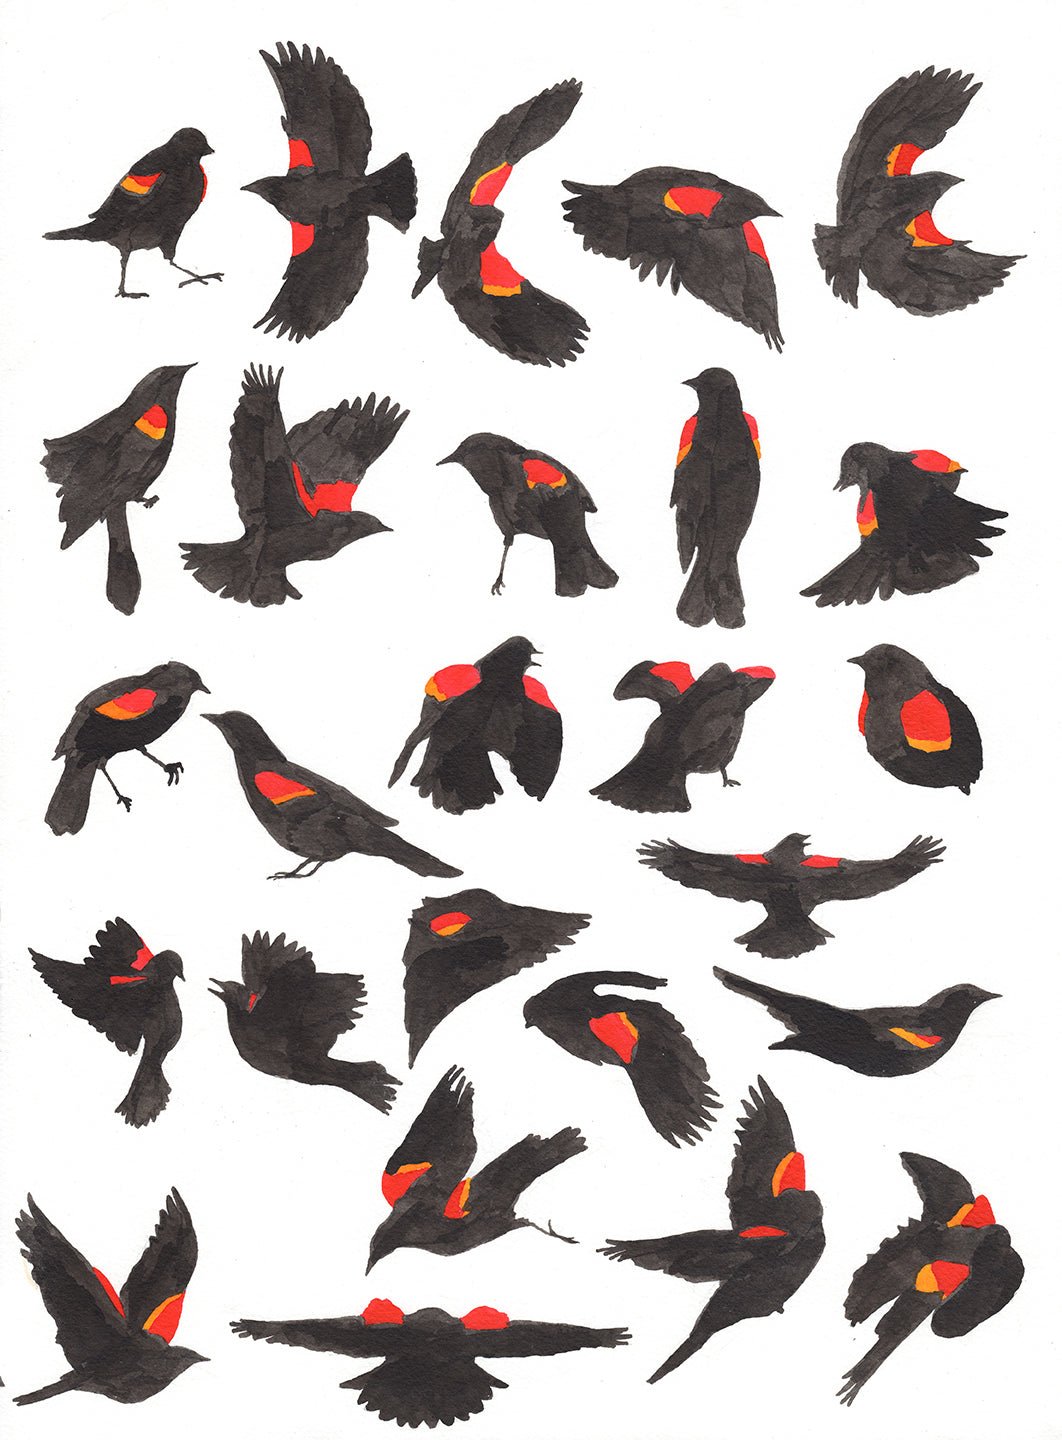 Painting of Red-Winged Blackbird Alphabet by Aimee Lusty